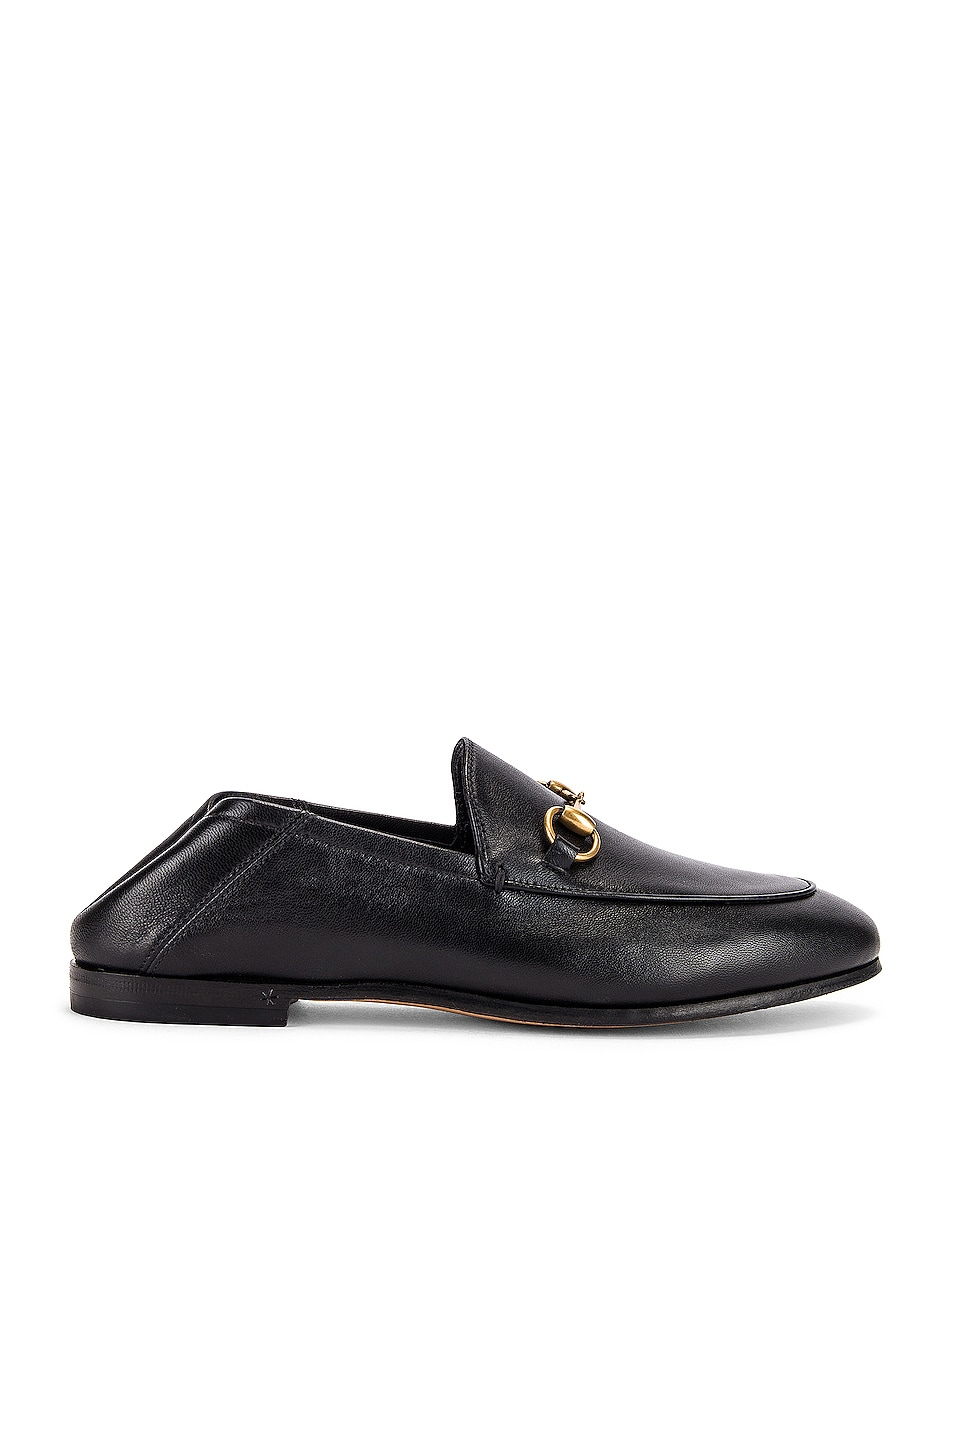 Image 1 of Gucci Brixton Slides in Black